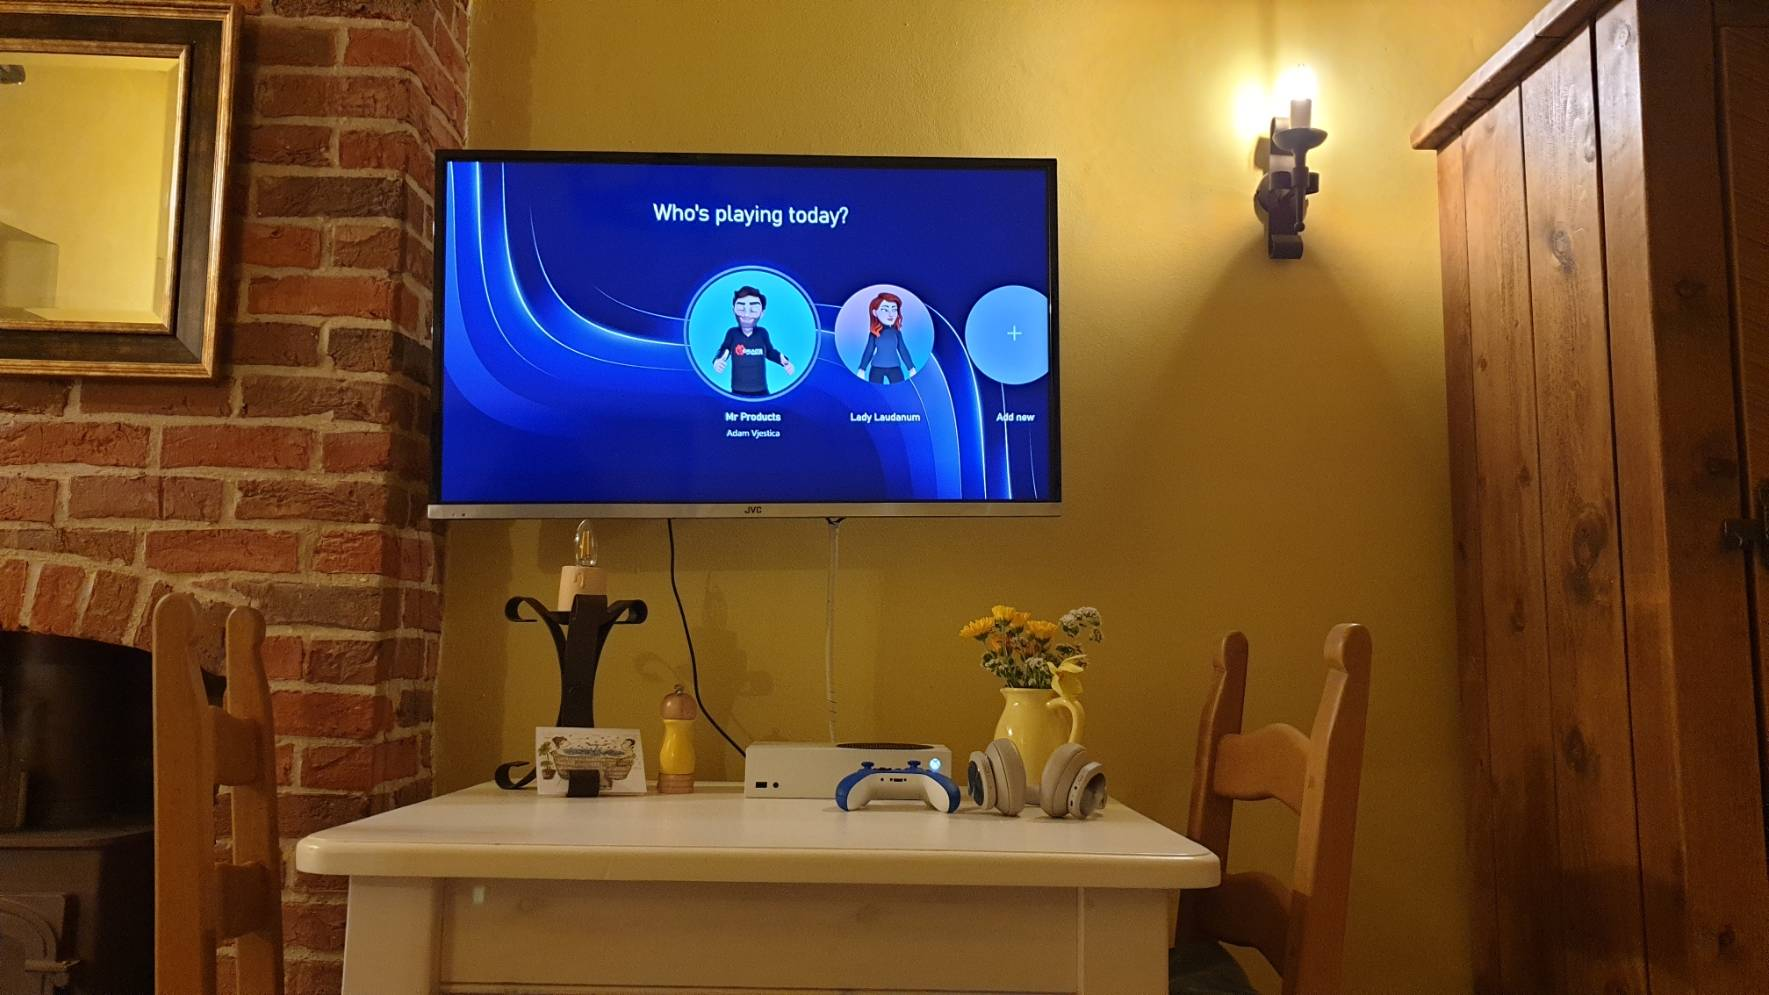 Wall mounted TV showing Xbox sign in screen and Xbox Series S console on table in a cottage